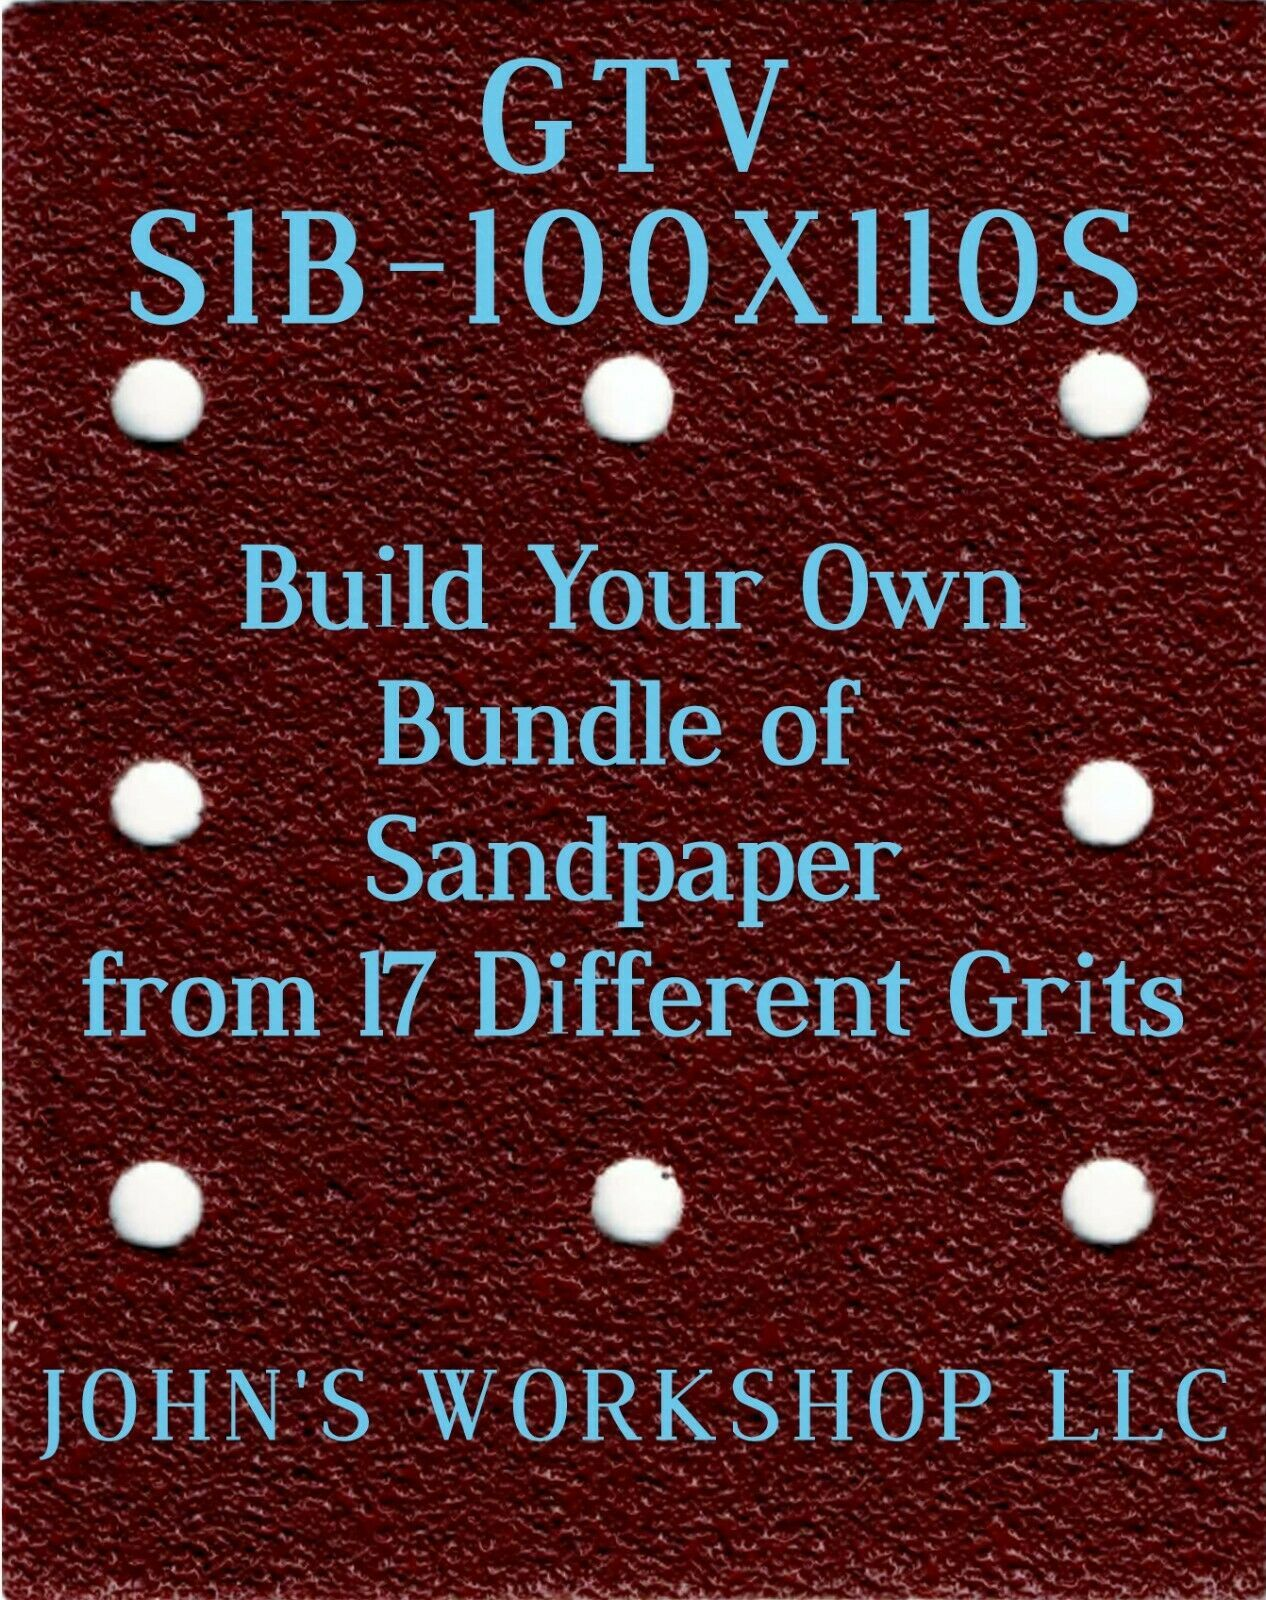 Primary image for Build Your Own Bundle GTV S1B-100X110S 1/4 Sheet No-Slip Sandpaper 17 Grits